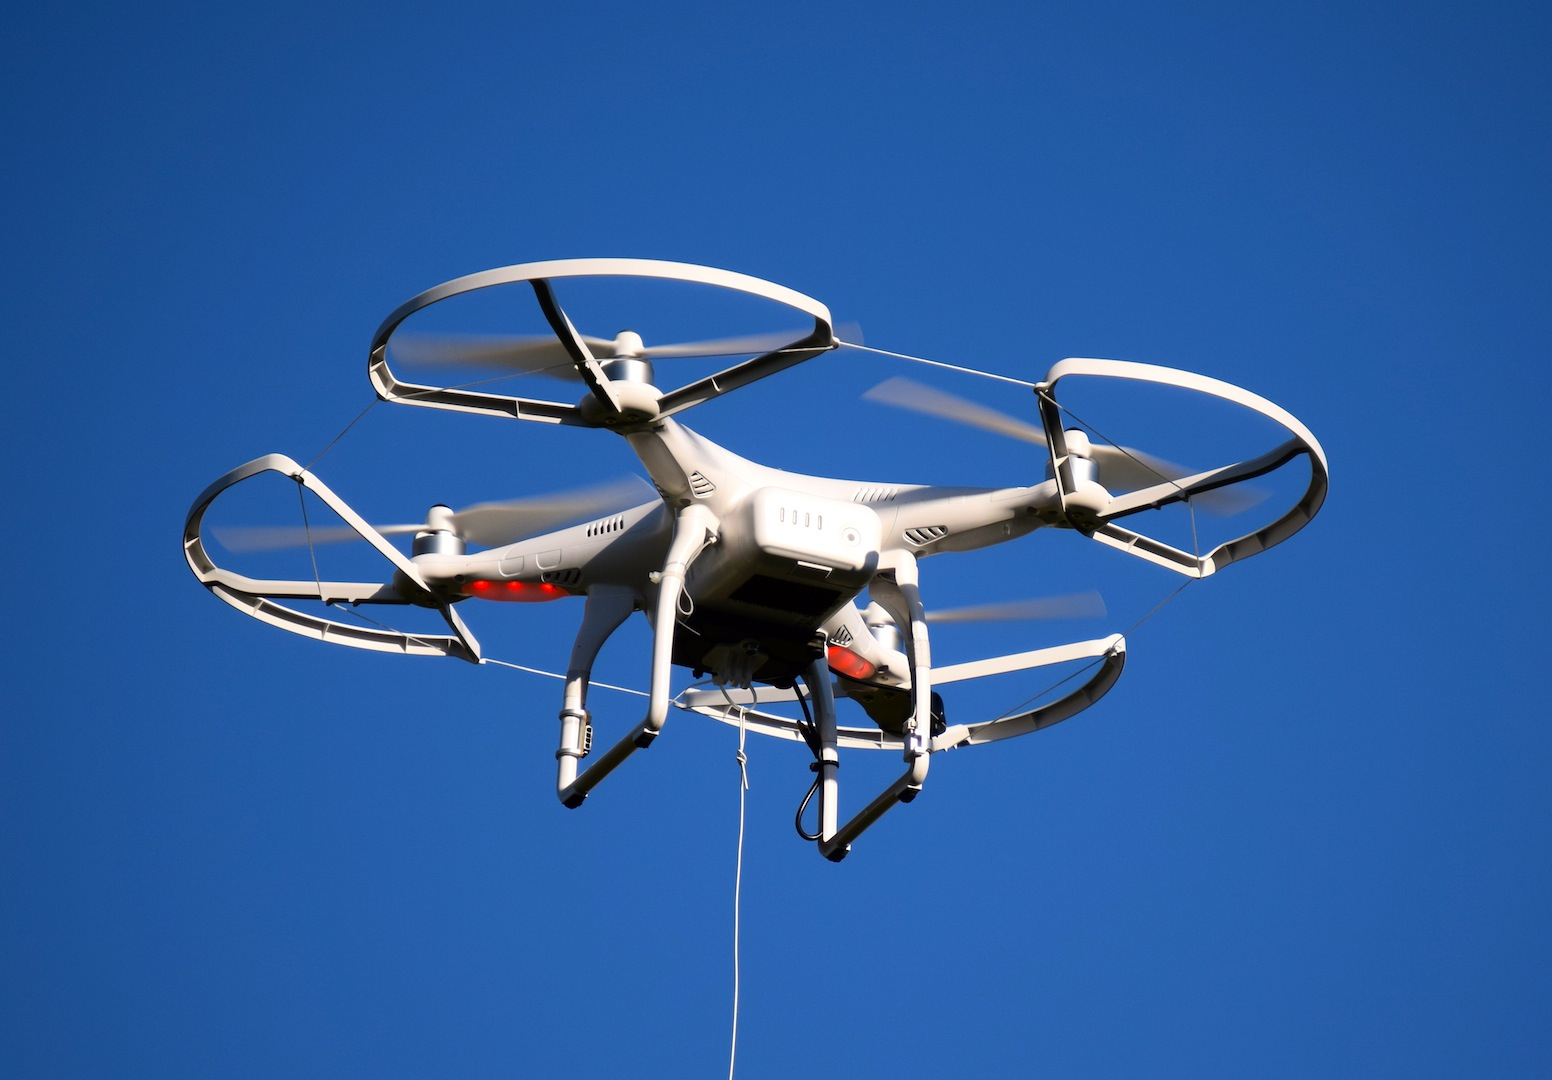 Airline Pilots Recommend Go Slow Approach On Drones Air